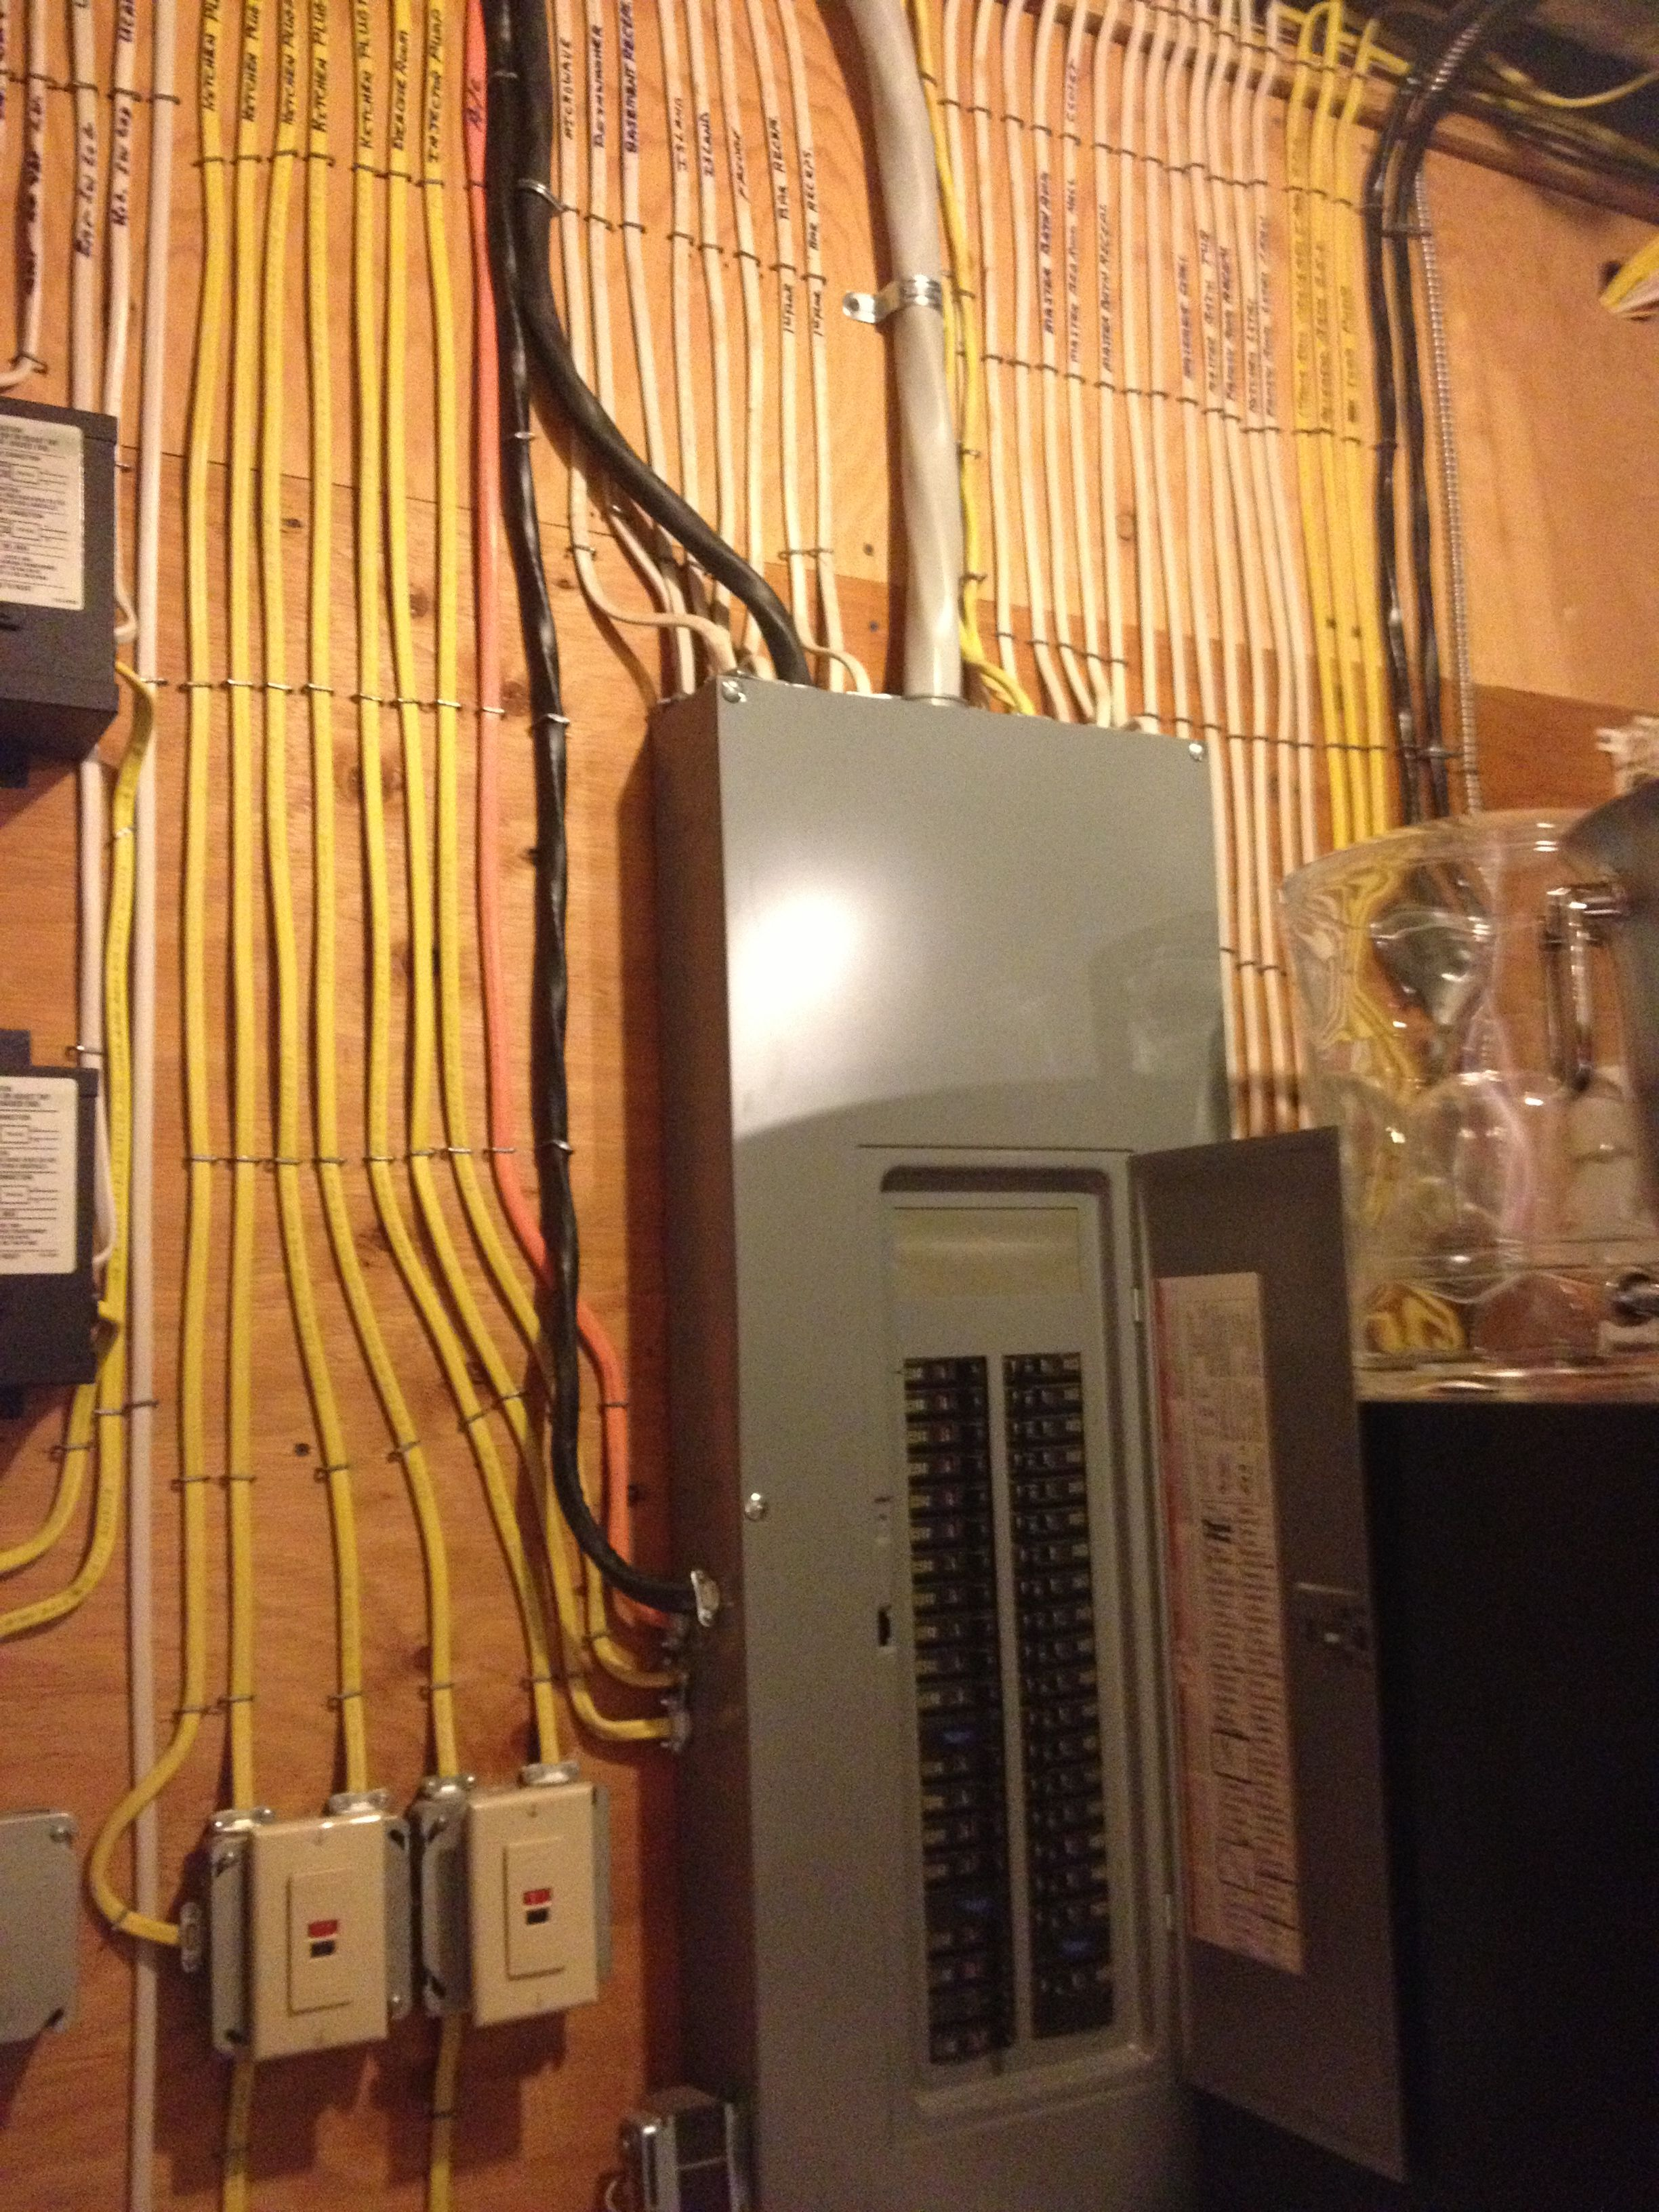 hight resolution of i ve never seen an ocd electrician like this before but i love it realestate springlakehomes